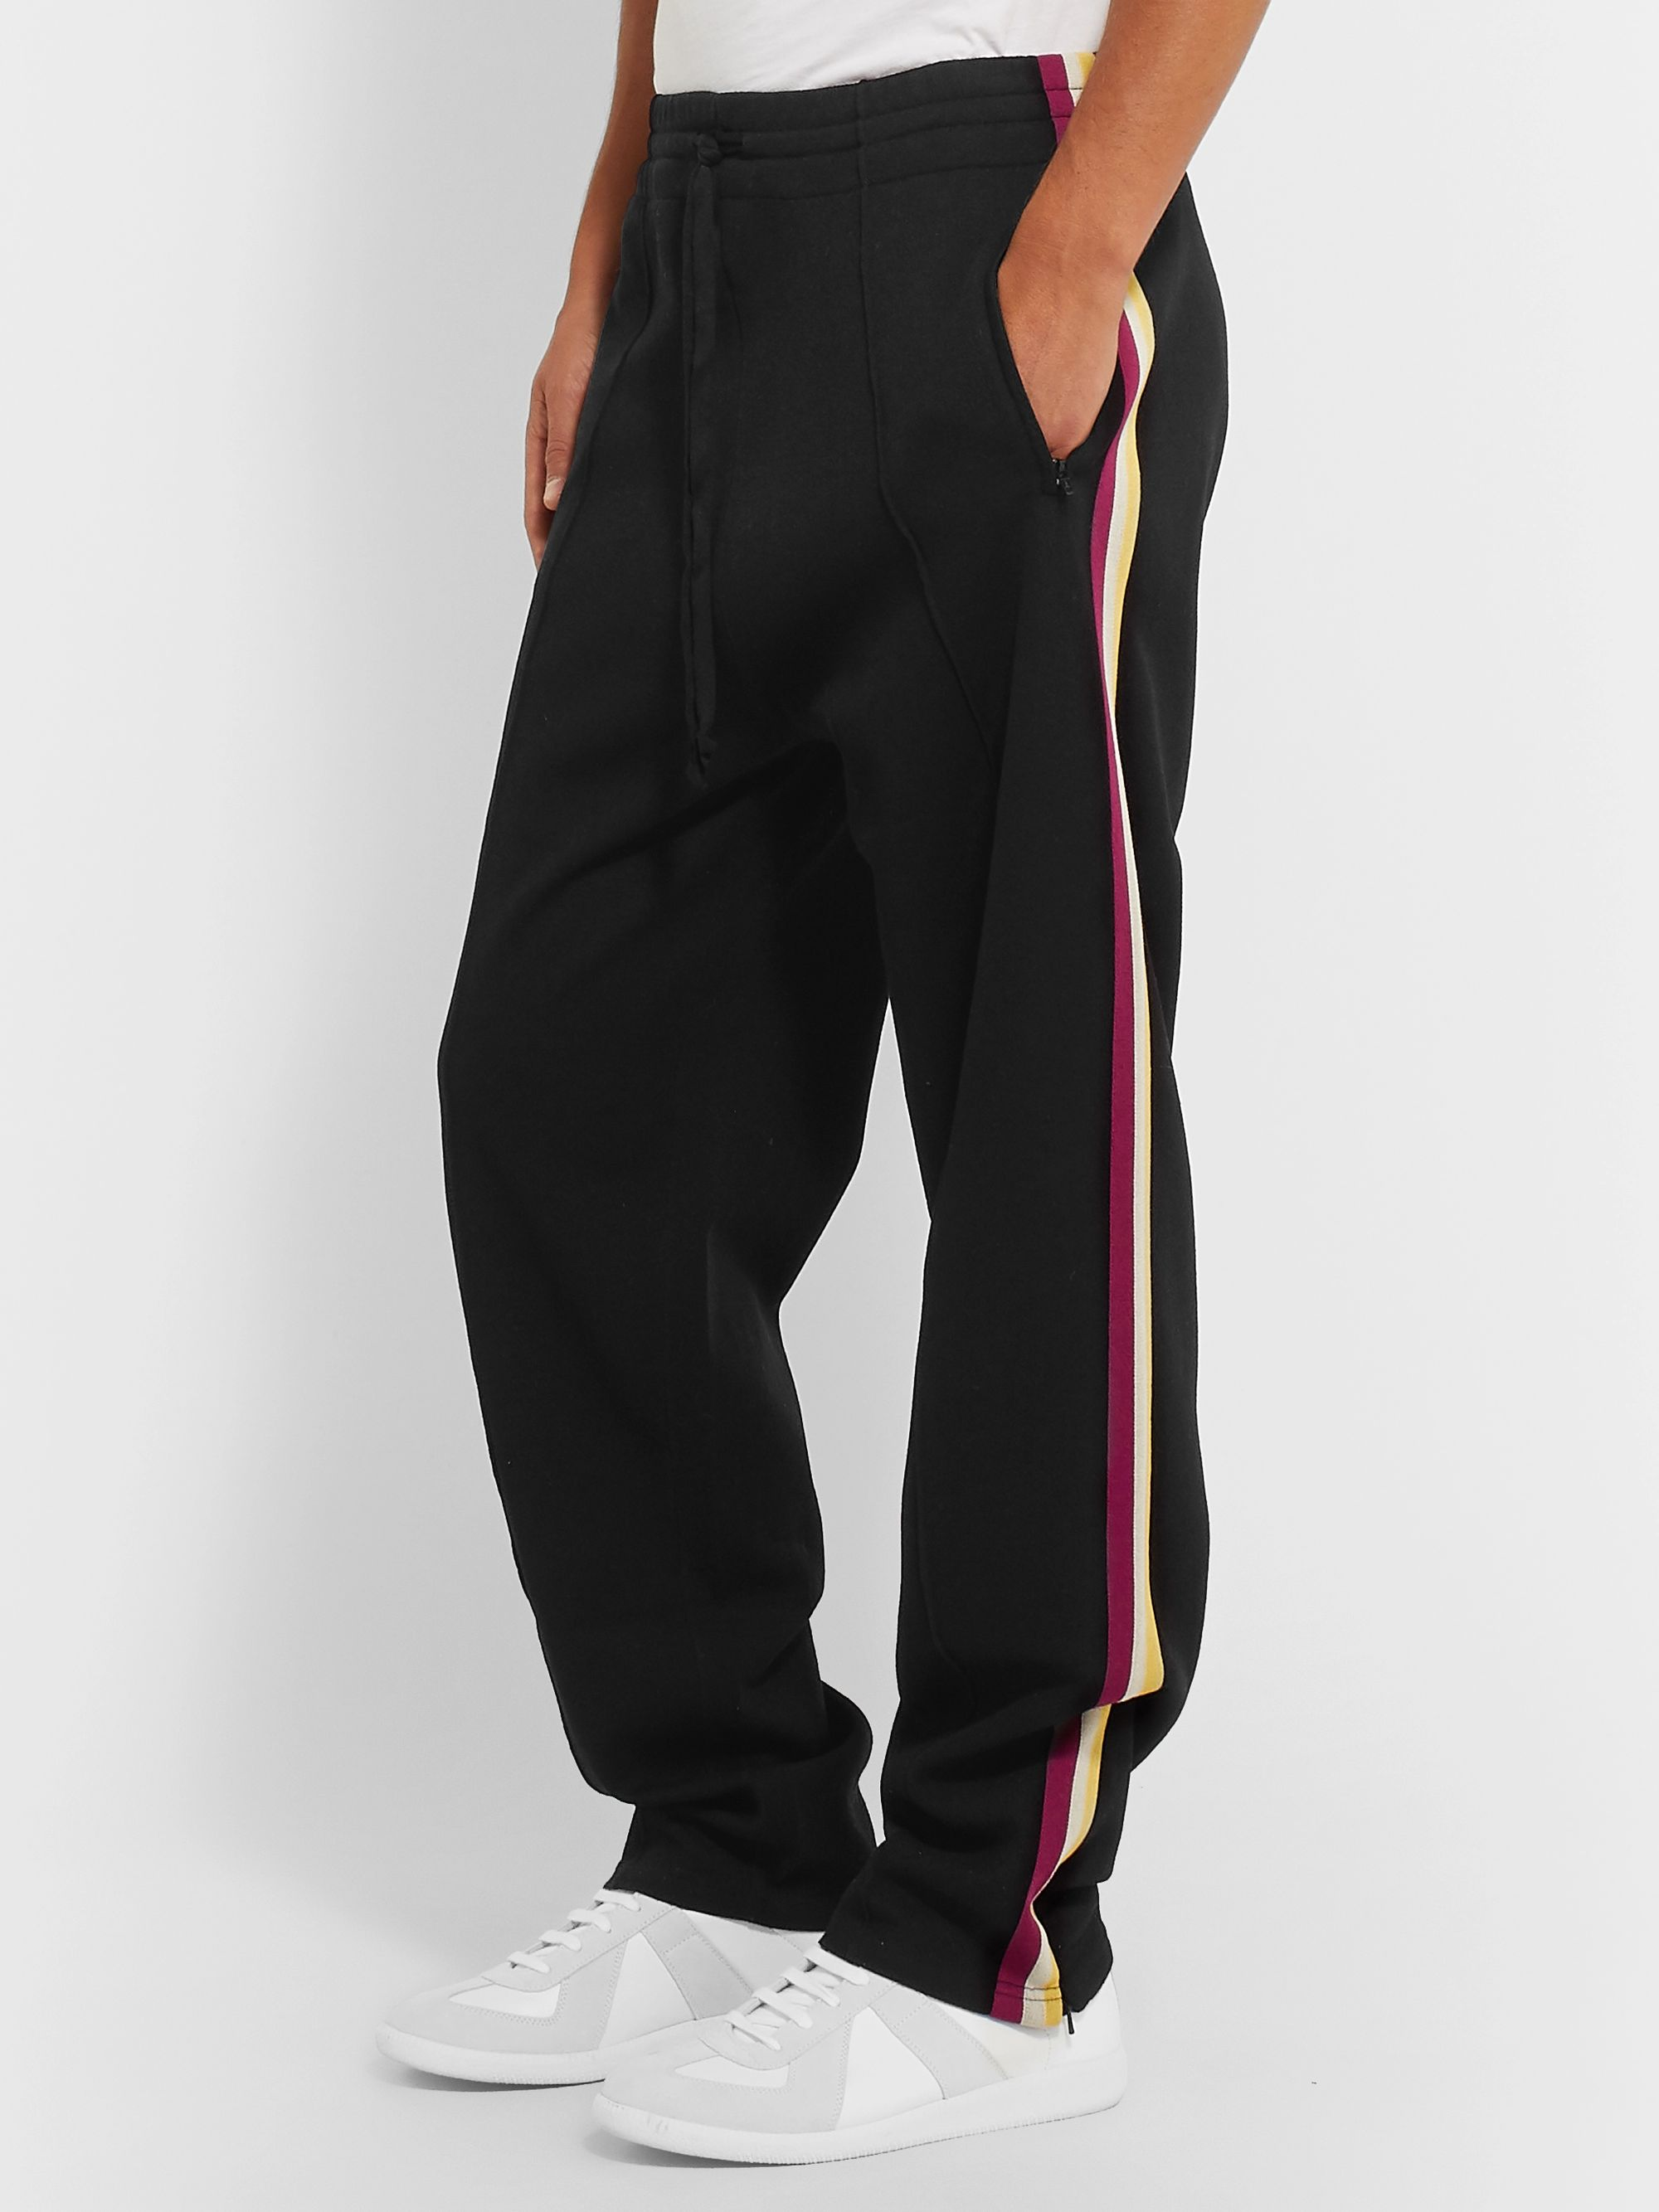 Isabel Marant Striped Jersey Sweatpants